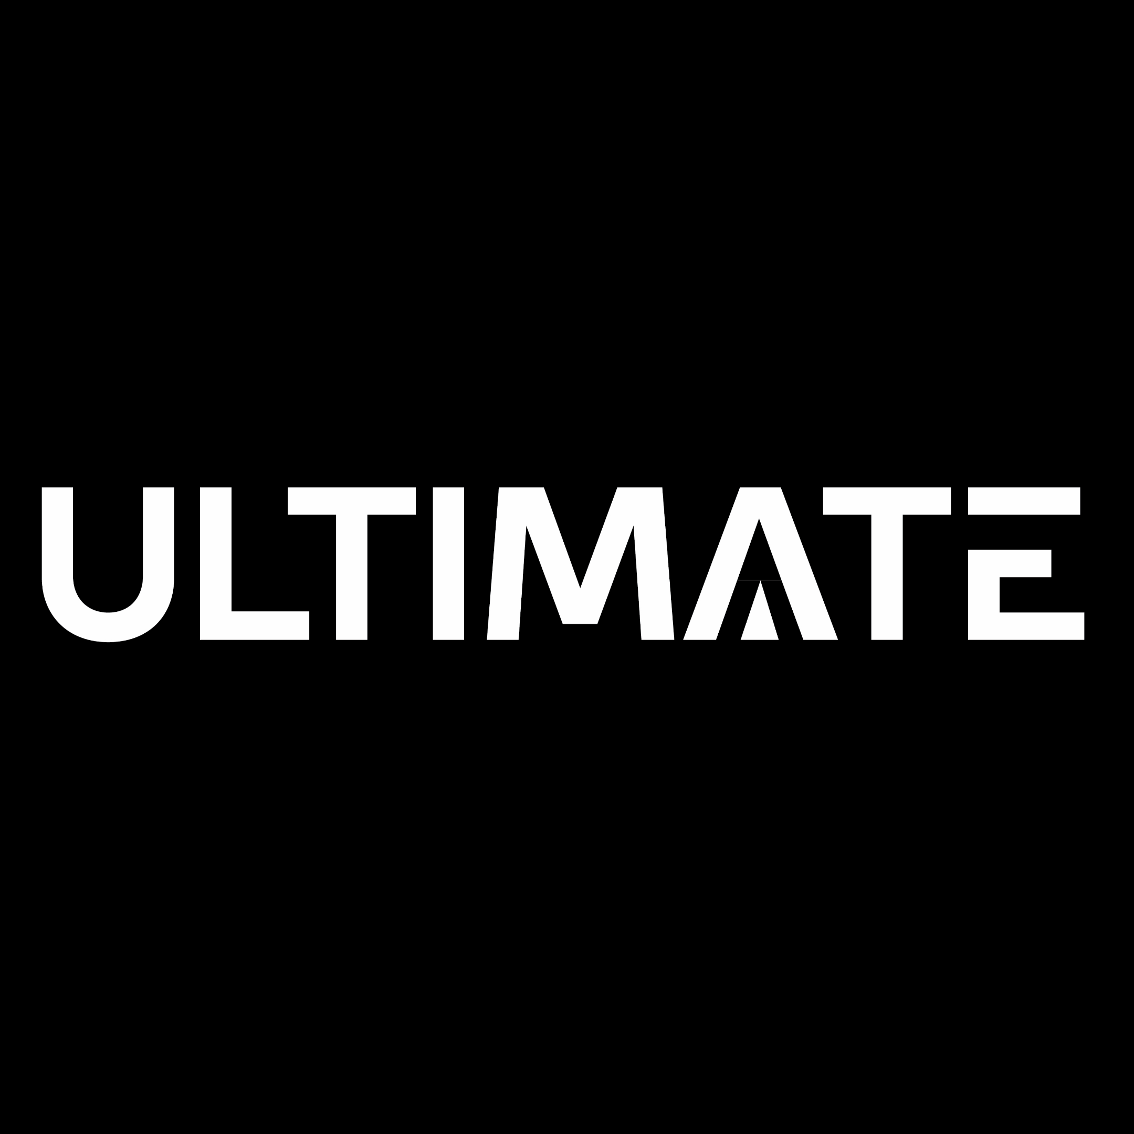 Ultimate Entertainments Group